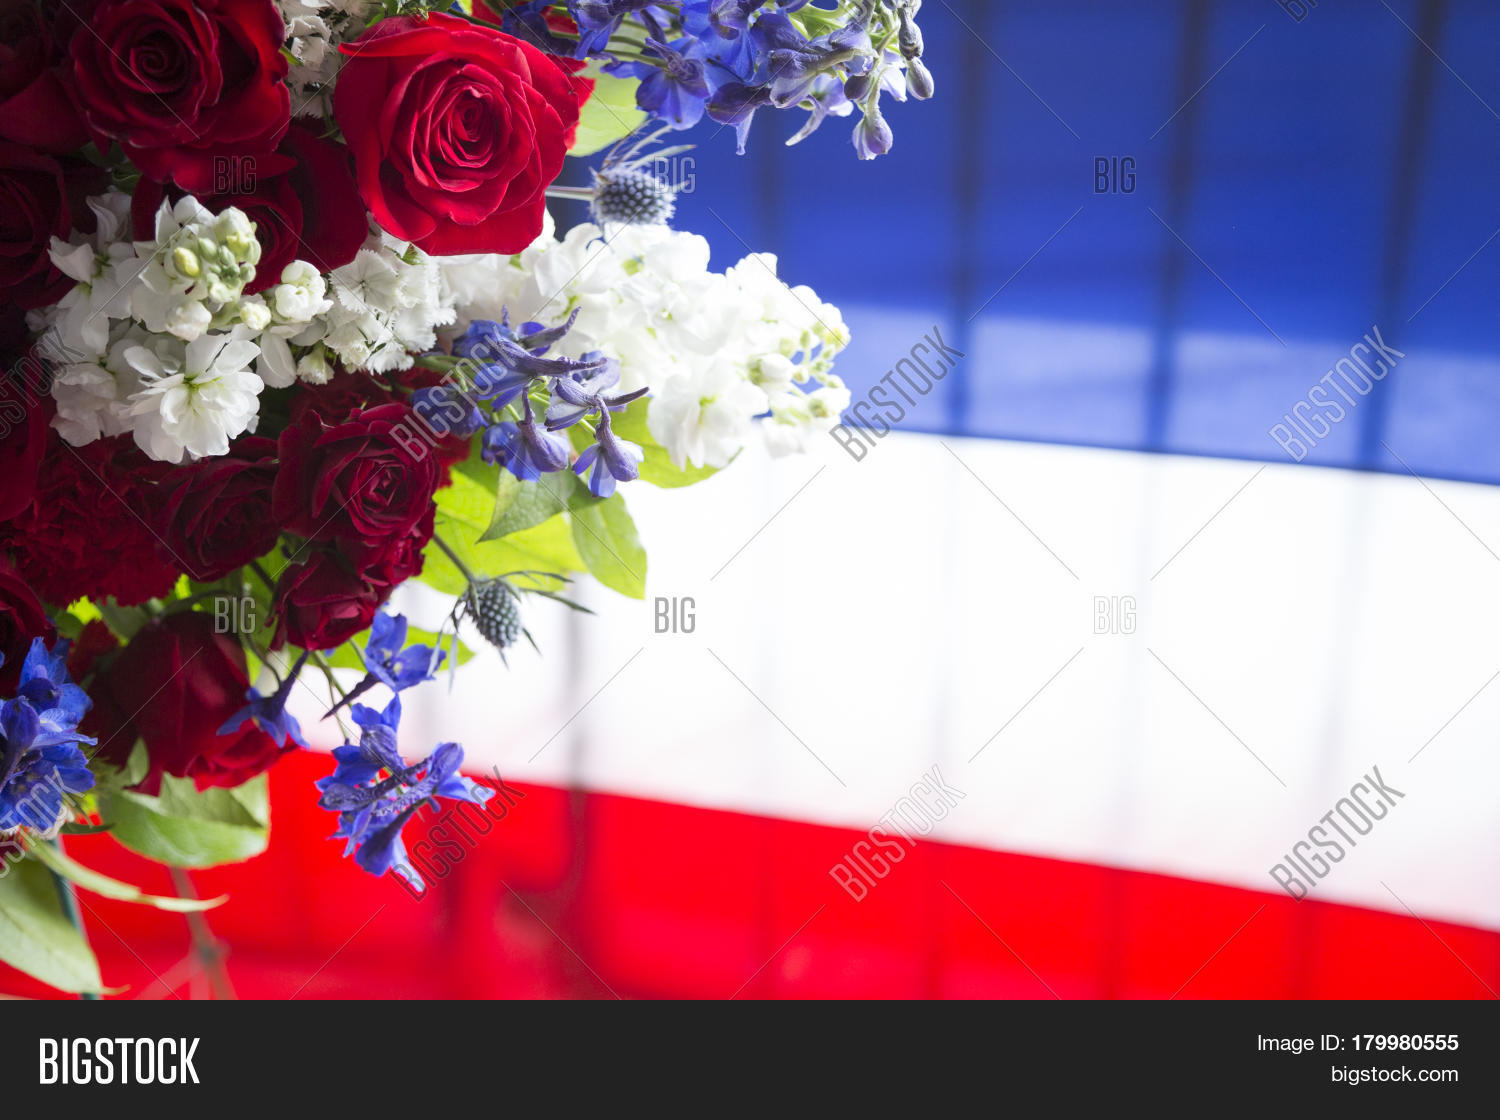 Red white blue flowers ceremonial image photo bigstock red white and blue flowers from a ceremonial wreath in honor and remembrance izmirmasajfo